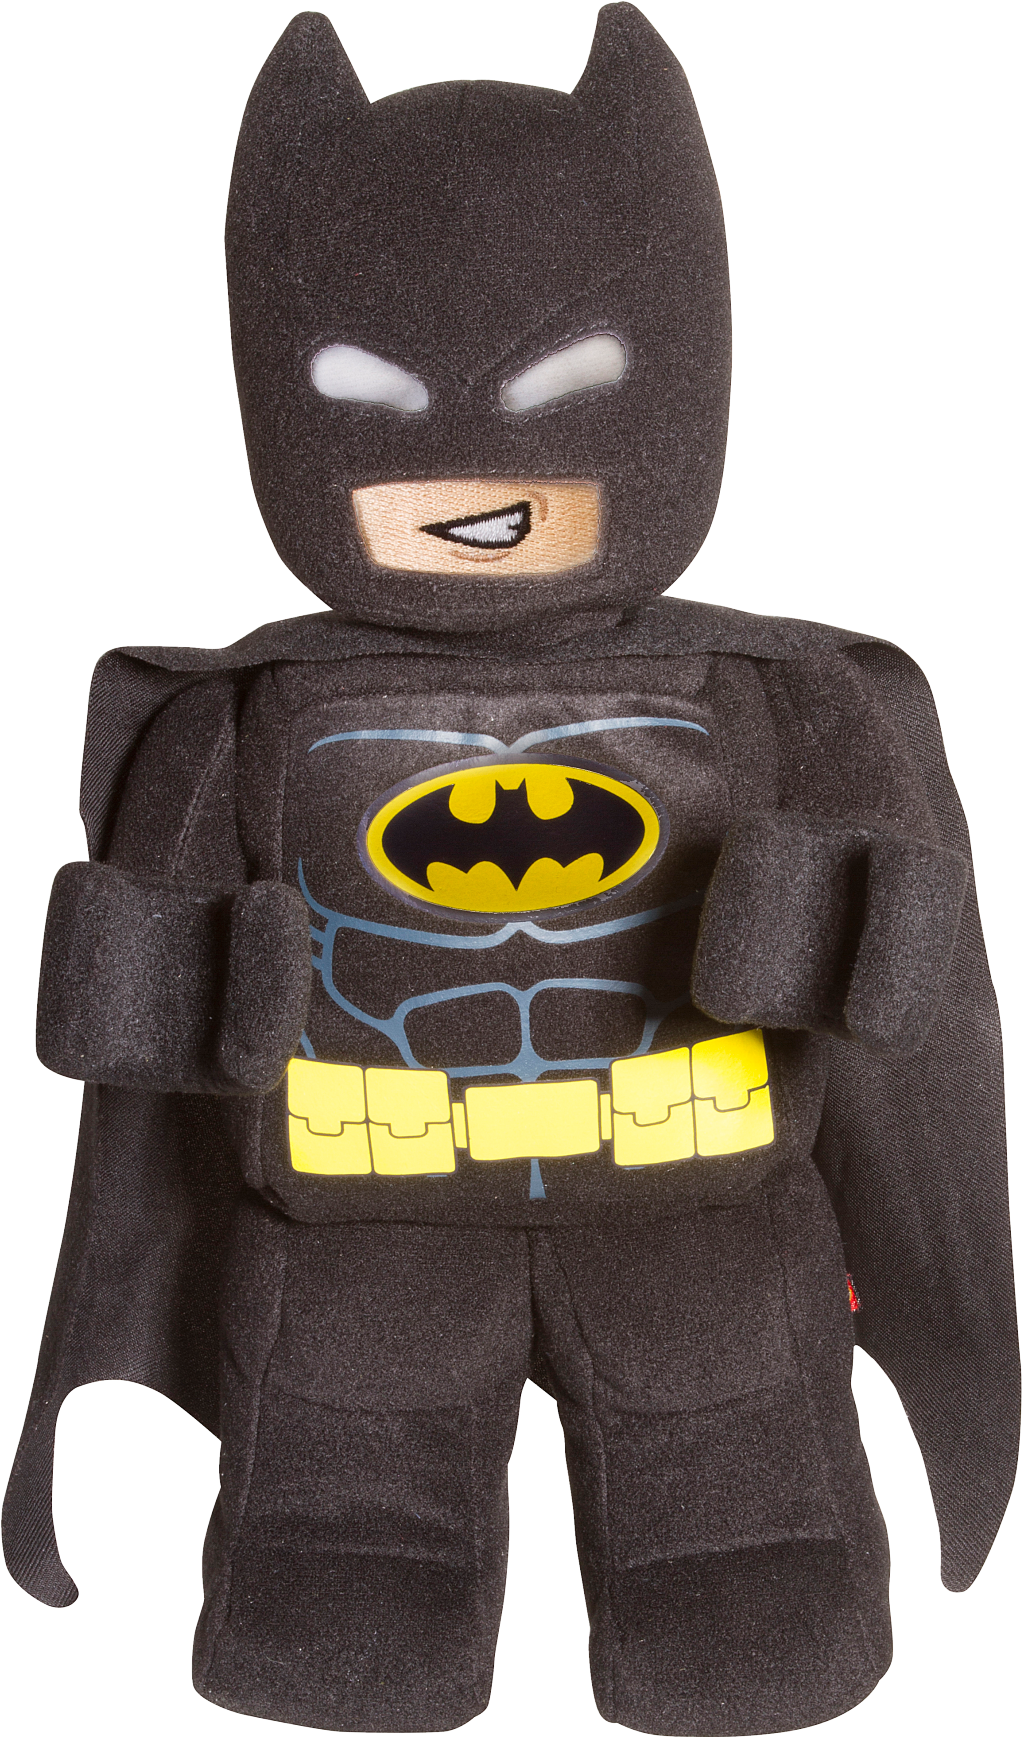 THE LEGO® BATMAN MOVIE Batman™ Minifigure Plush